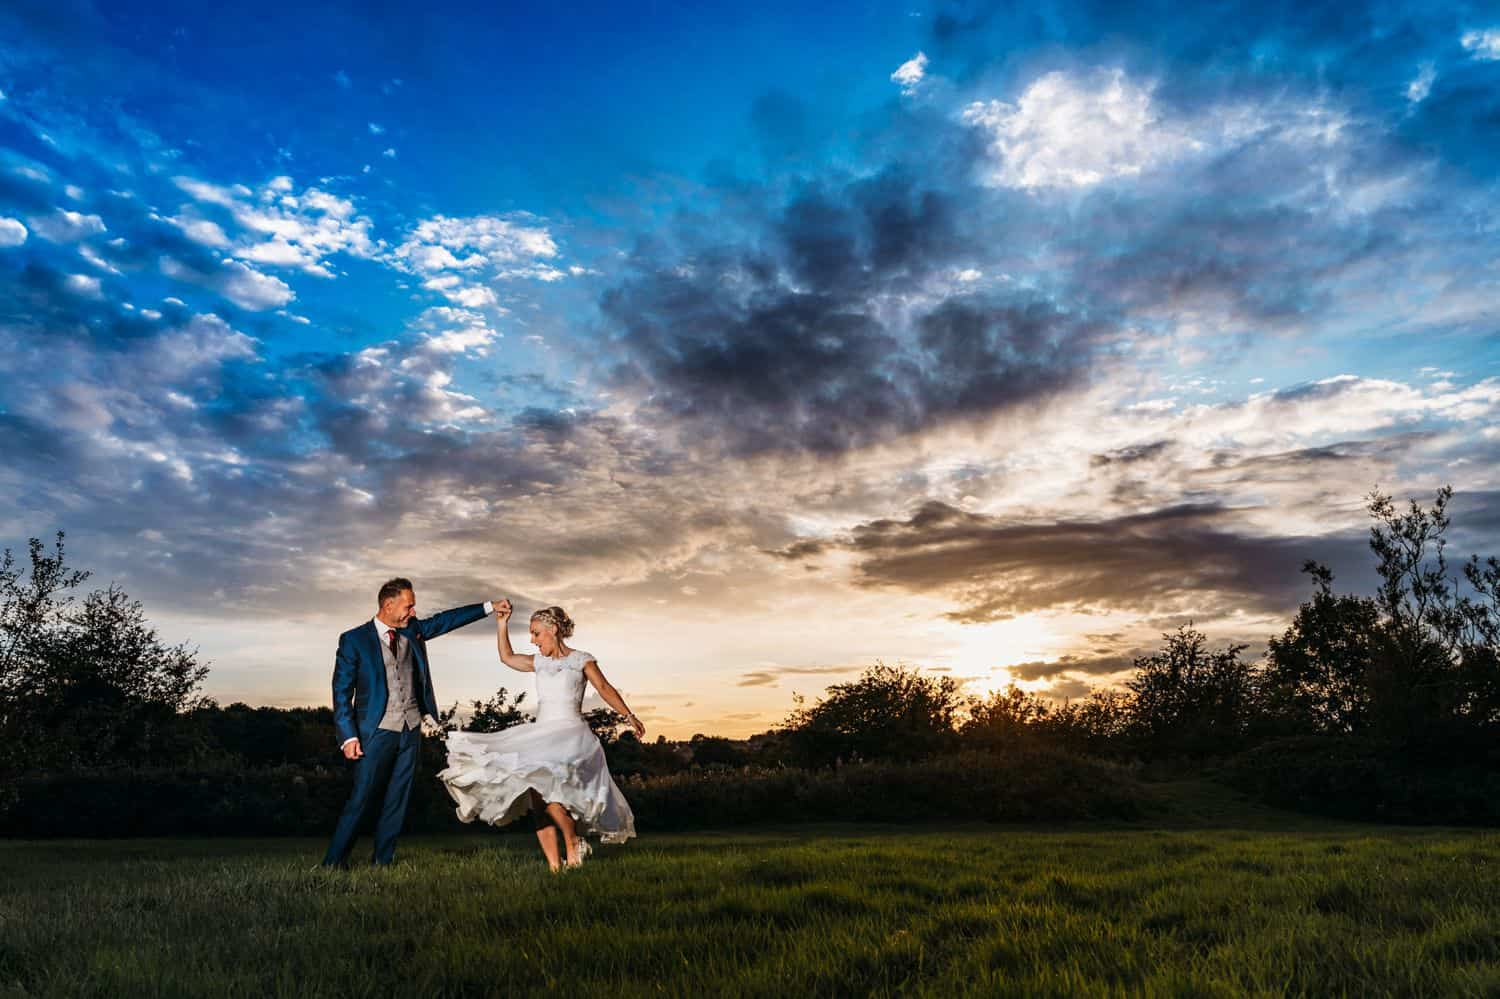 A sunset portrait of a groom twirling his bride in a wide lawn